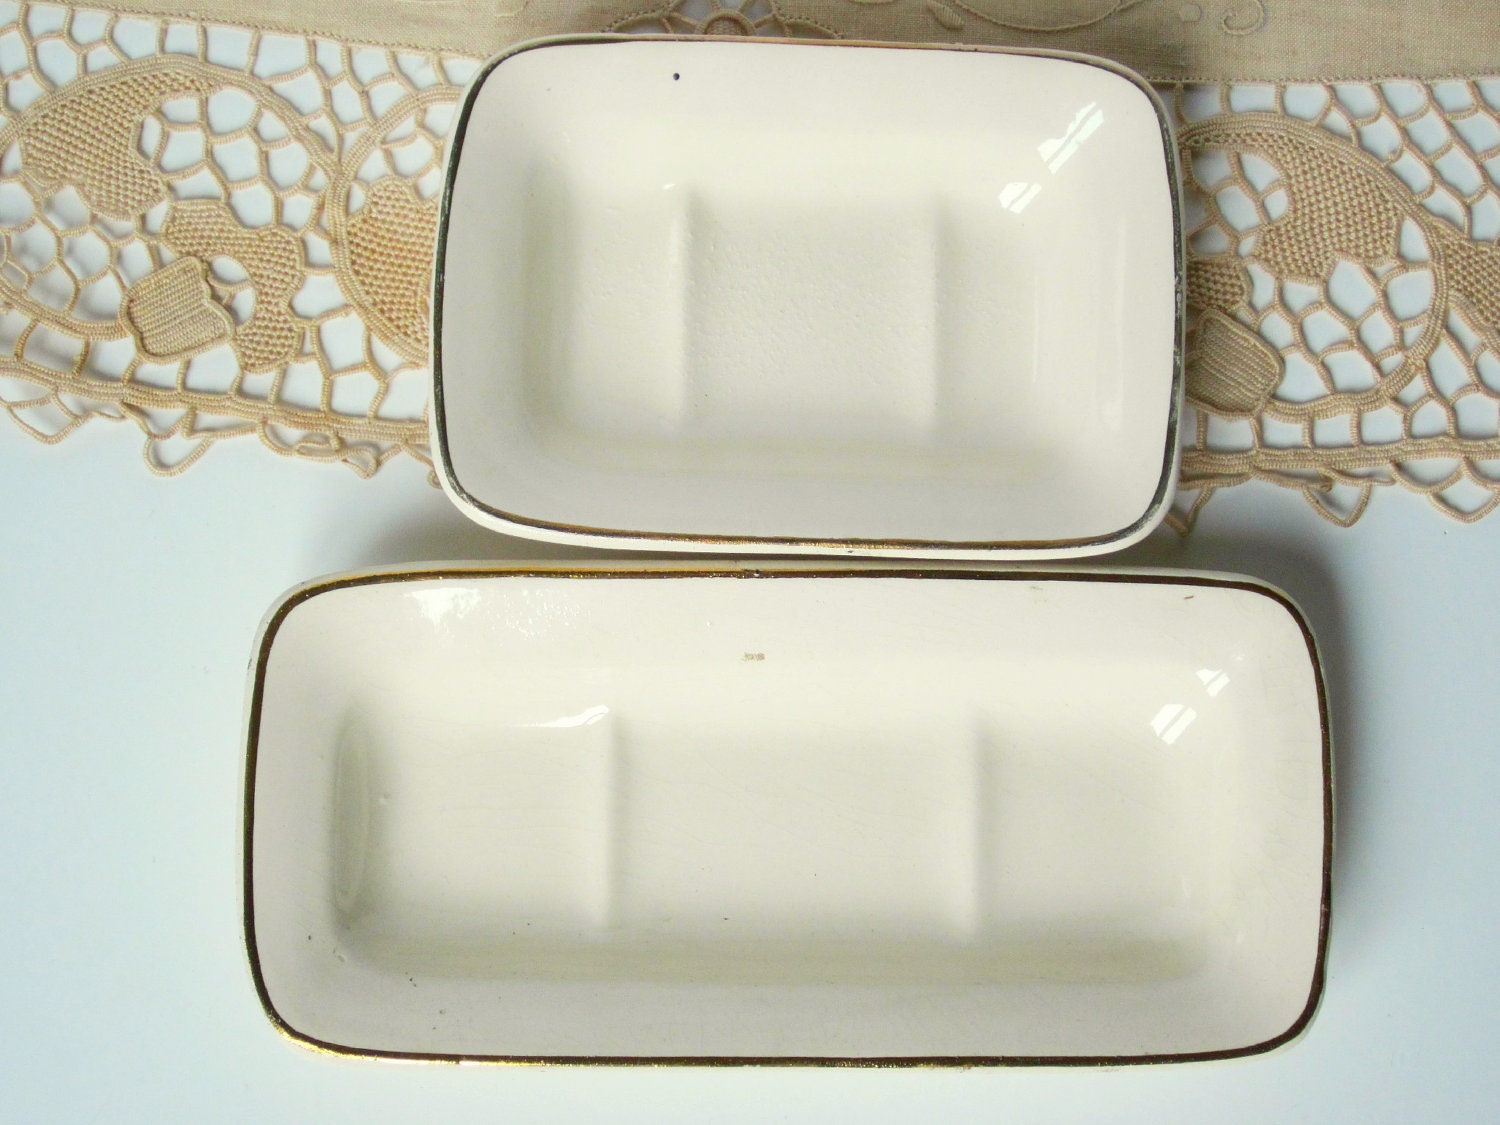 2 vintage french soap dishes ceramic bath set by 5littlecups - Ceramic soap dishes for bathrooms ...